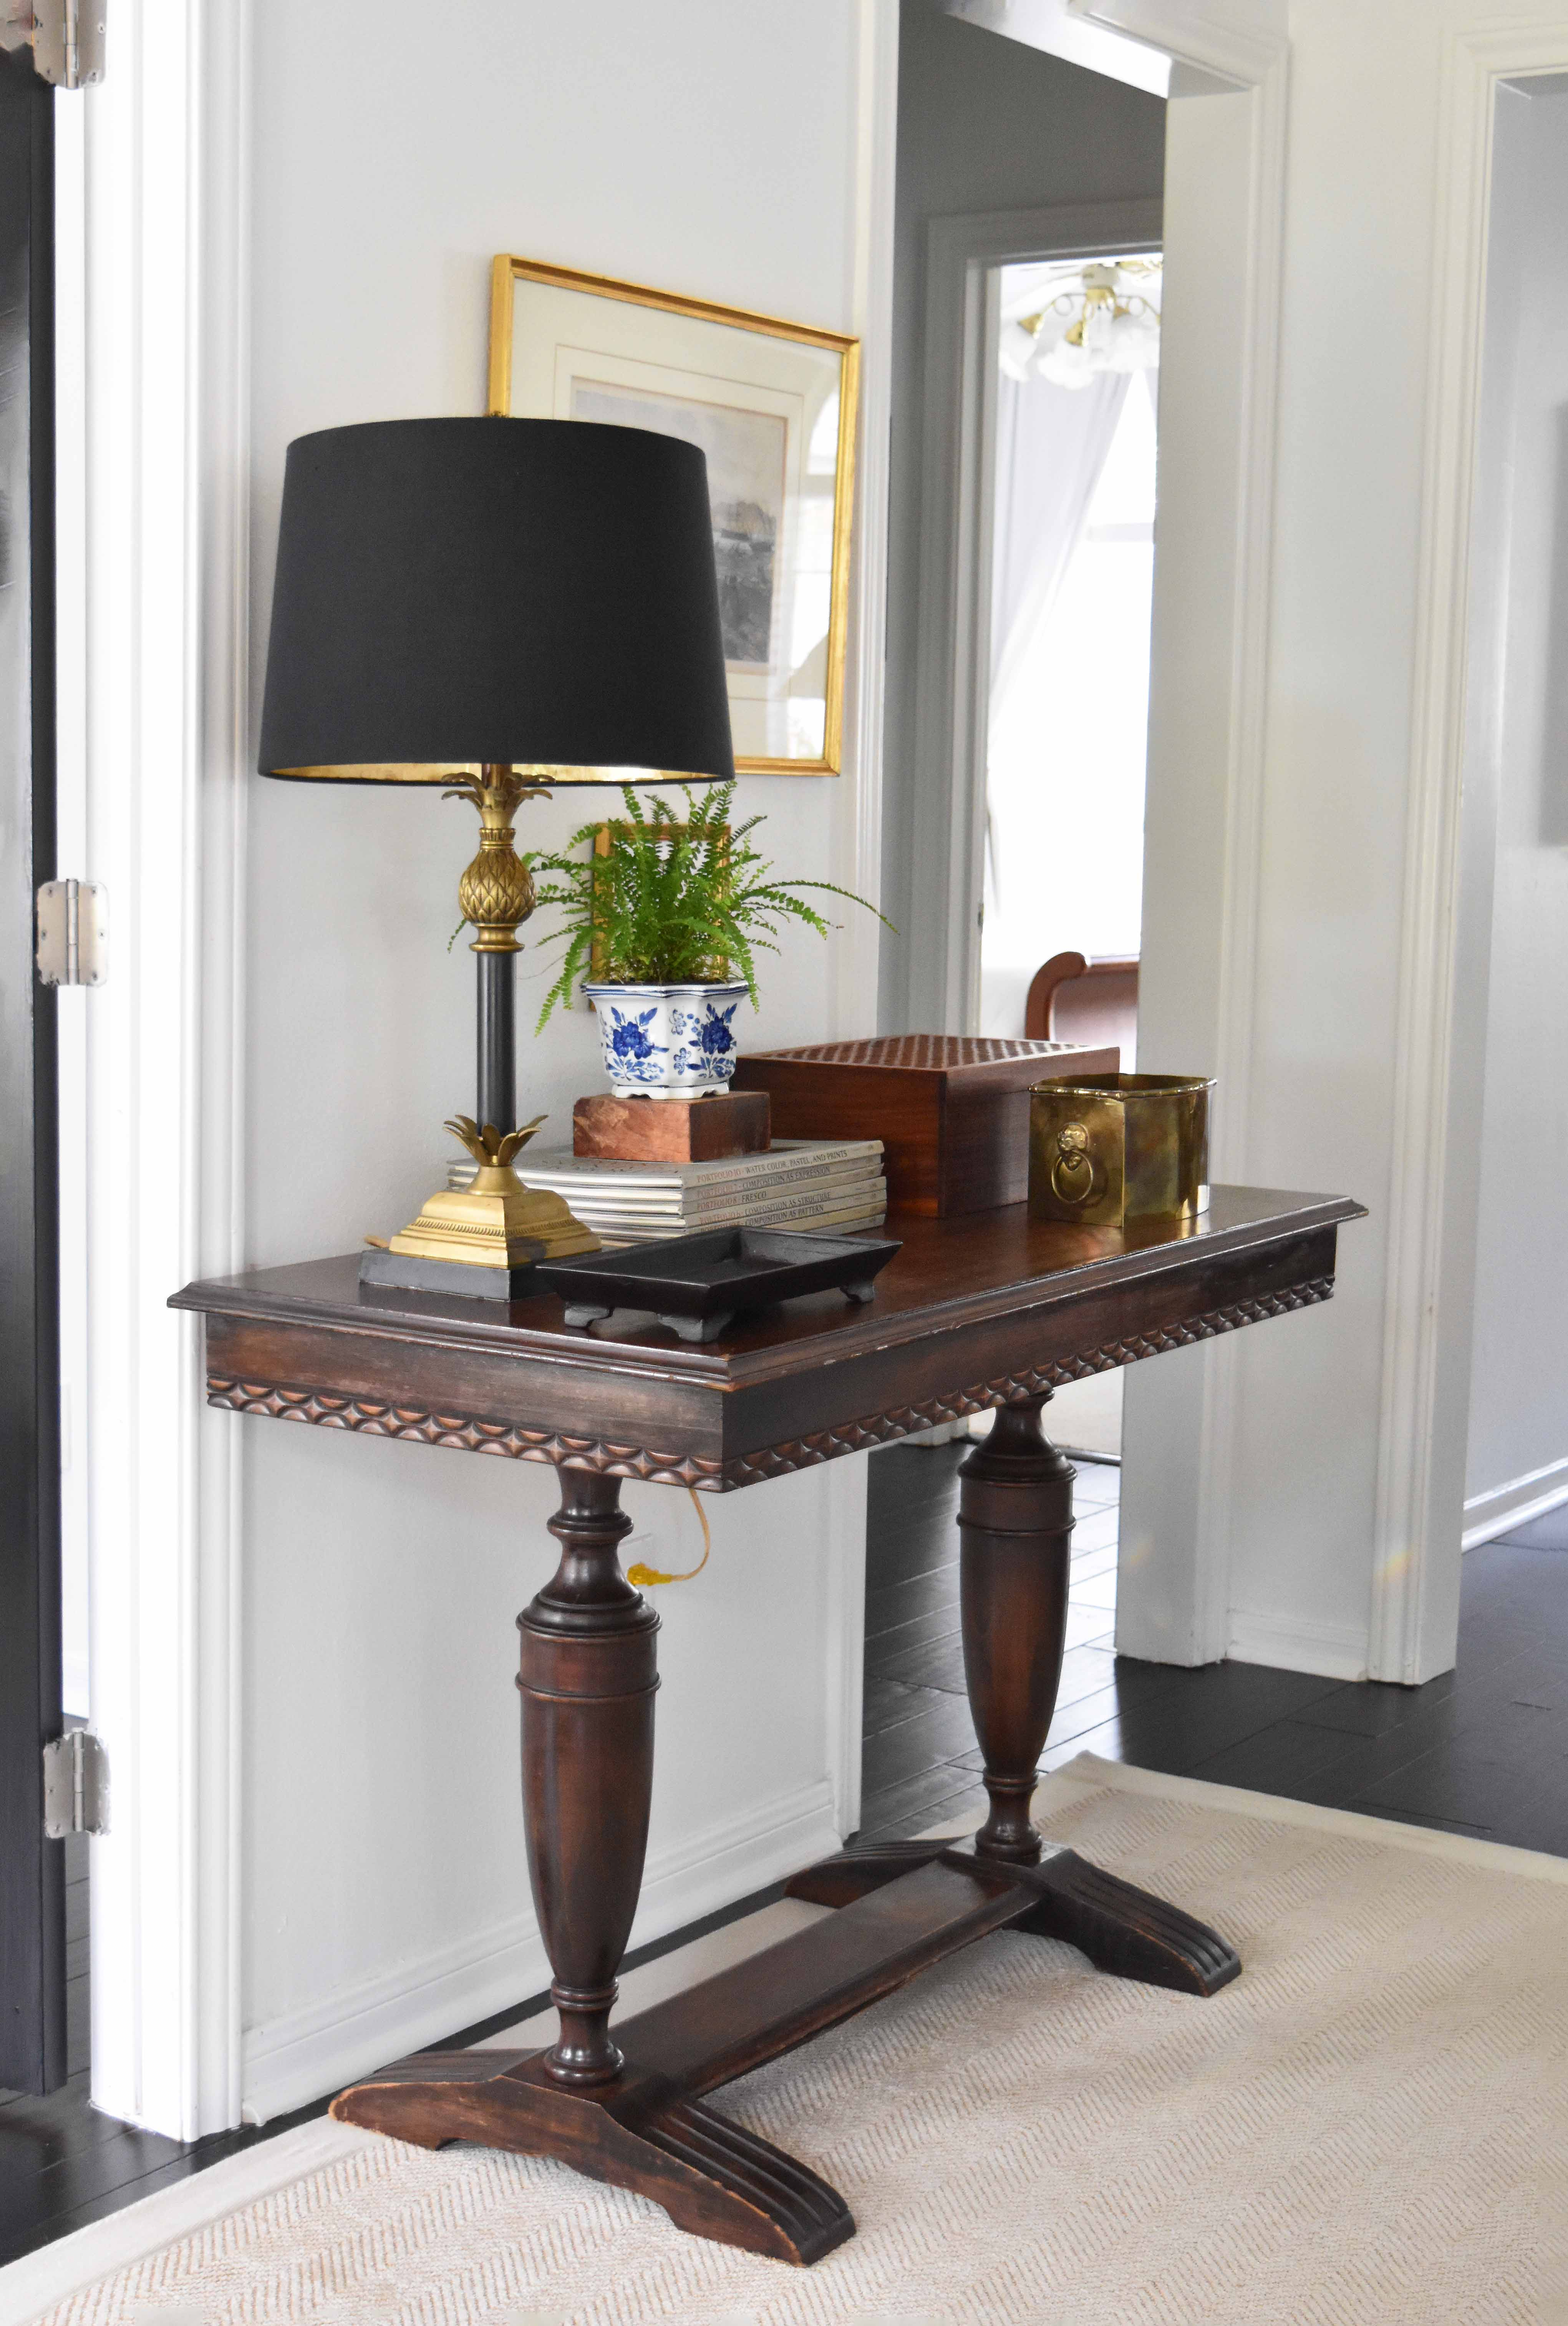 A Classic Entryway Setup For Under $100 (Furniture Included)